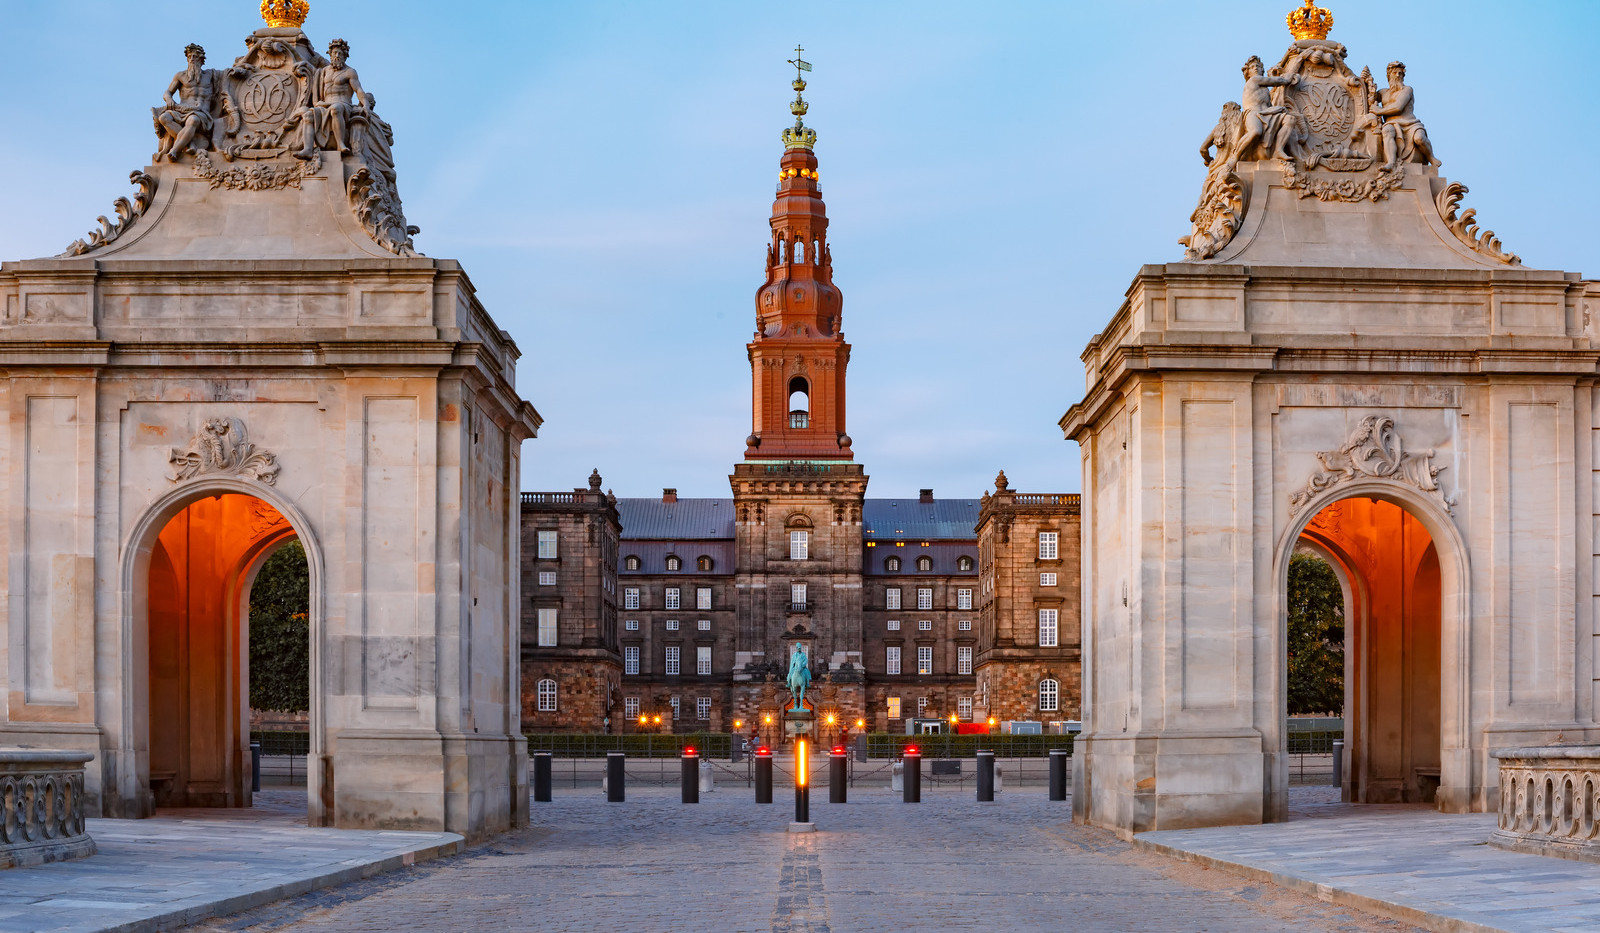 Canva - Christiansborg Palace in Copenha